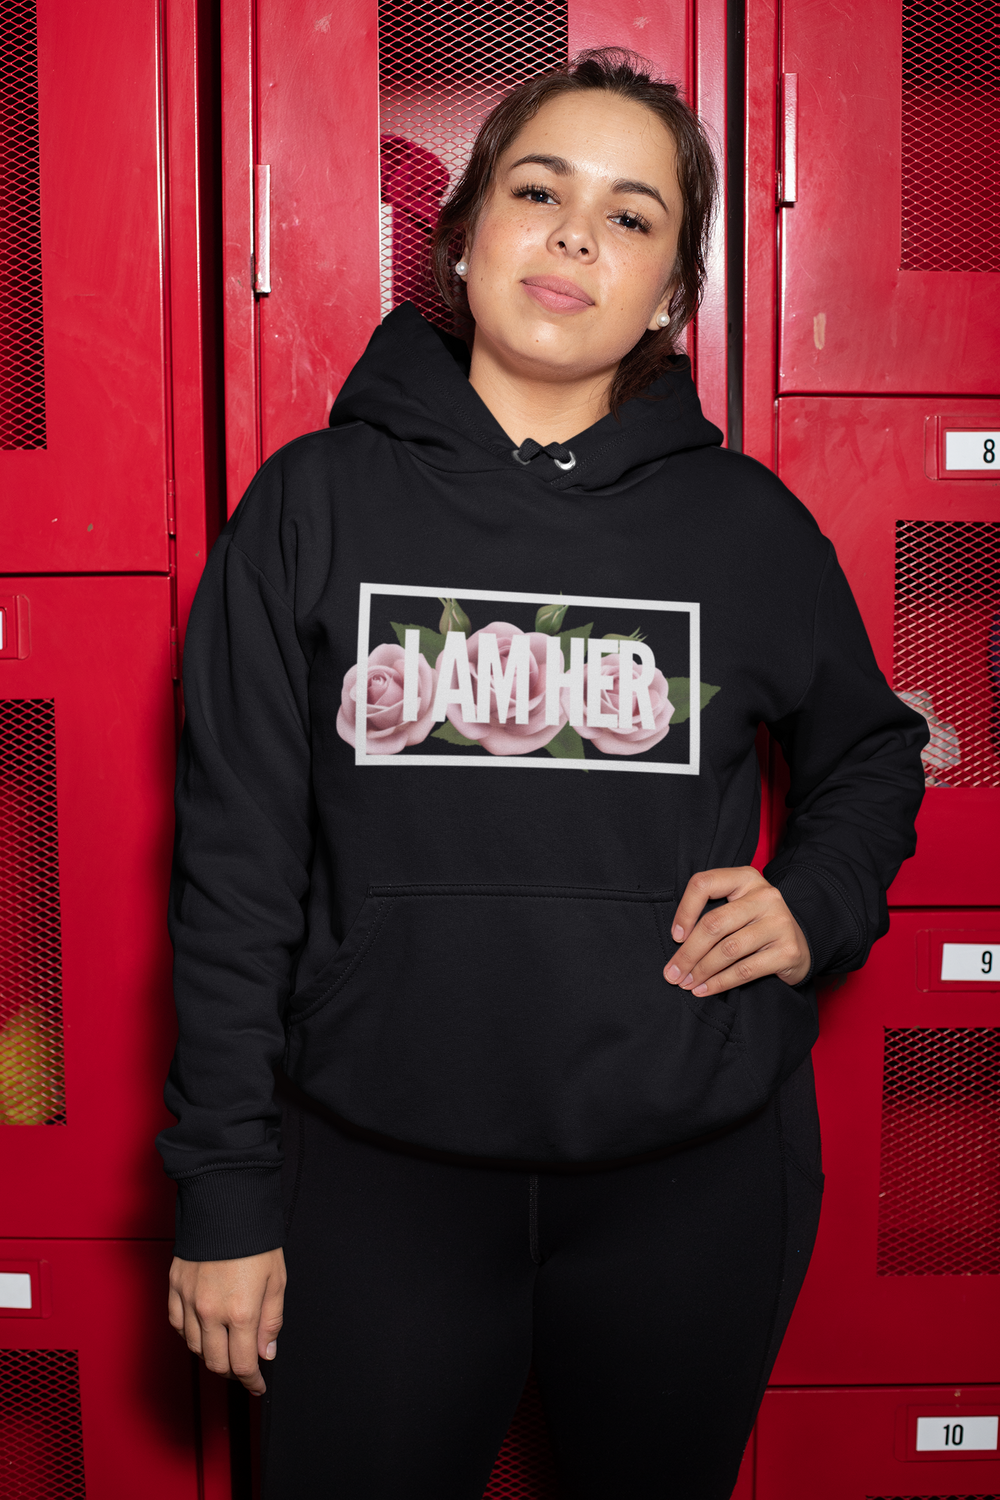 WARRIOR - Women's Hooded Sweatshirt